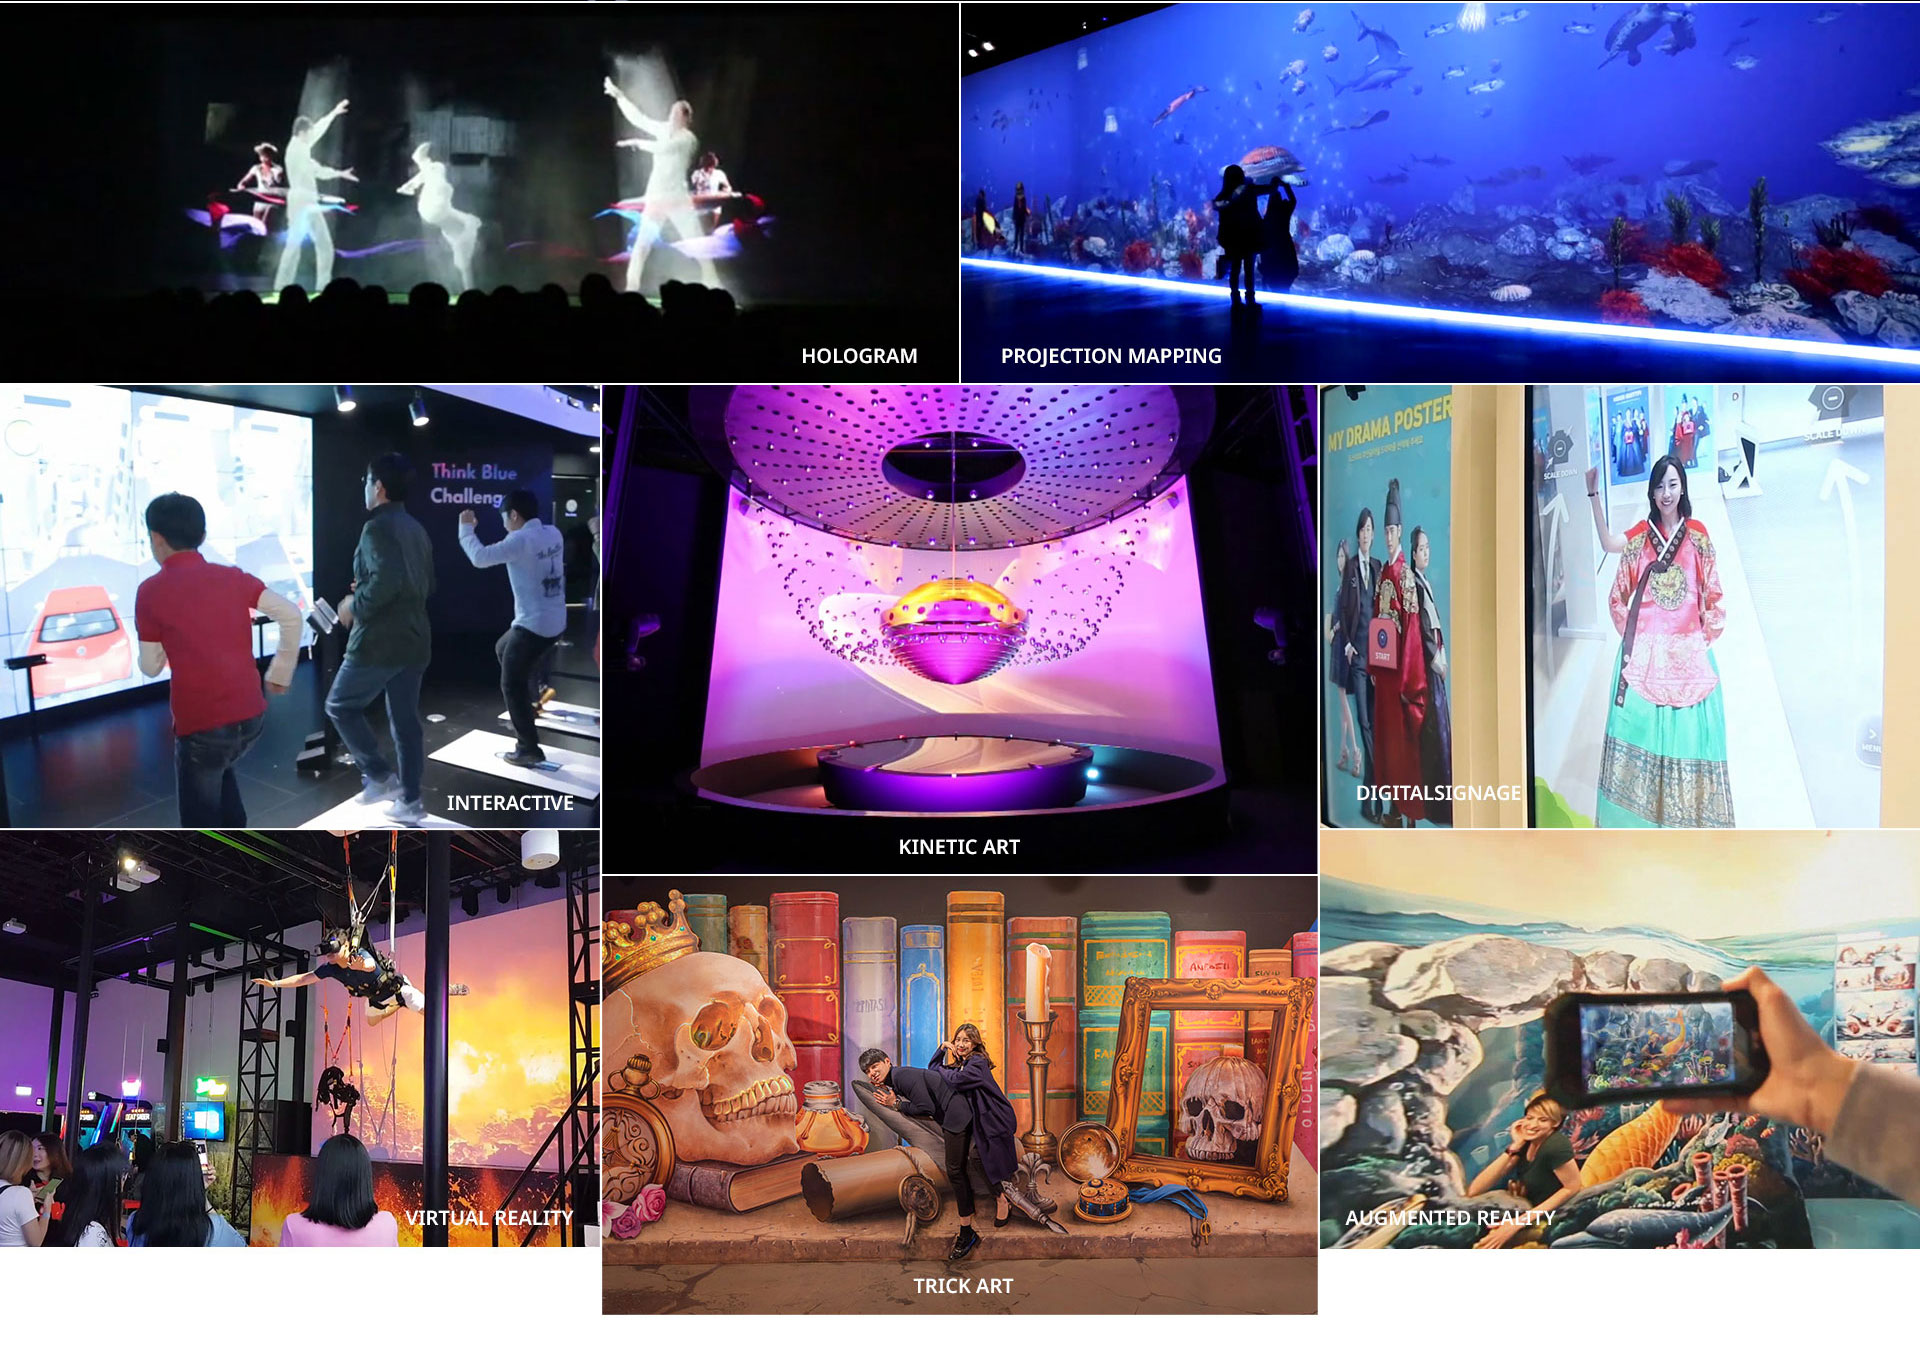 HOLOGRAM, PROJECTION MAPPING, INTERACTIVE, KINETIC ART, DIGITAL SIGNAGE, AUGMENETED REALITY, TRICK ART, VIRTUAL REALITY